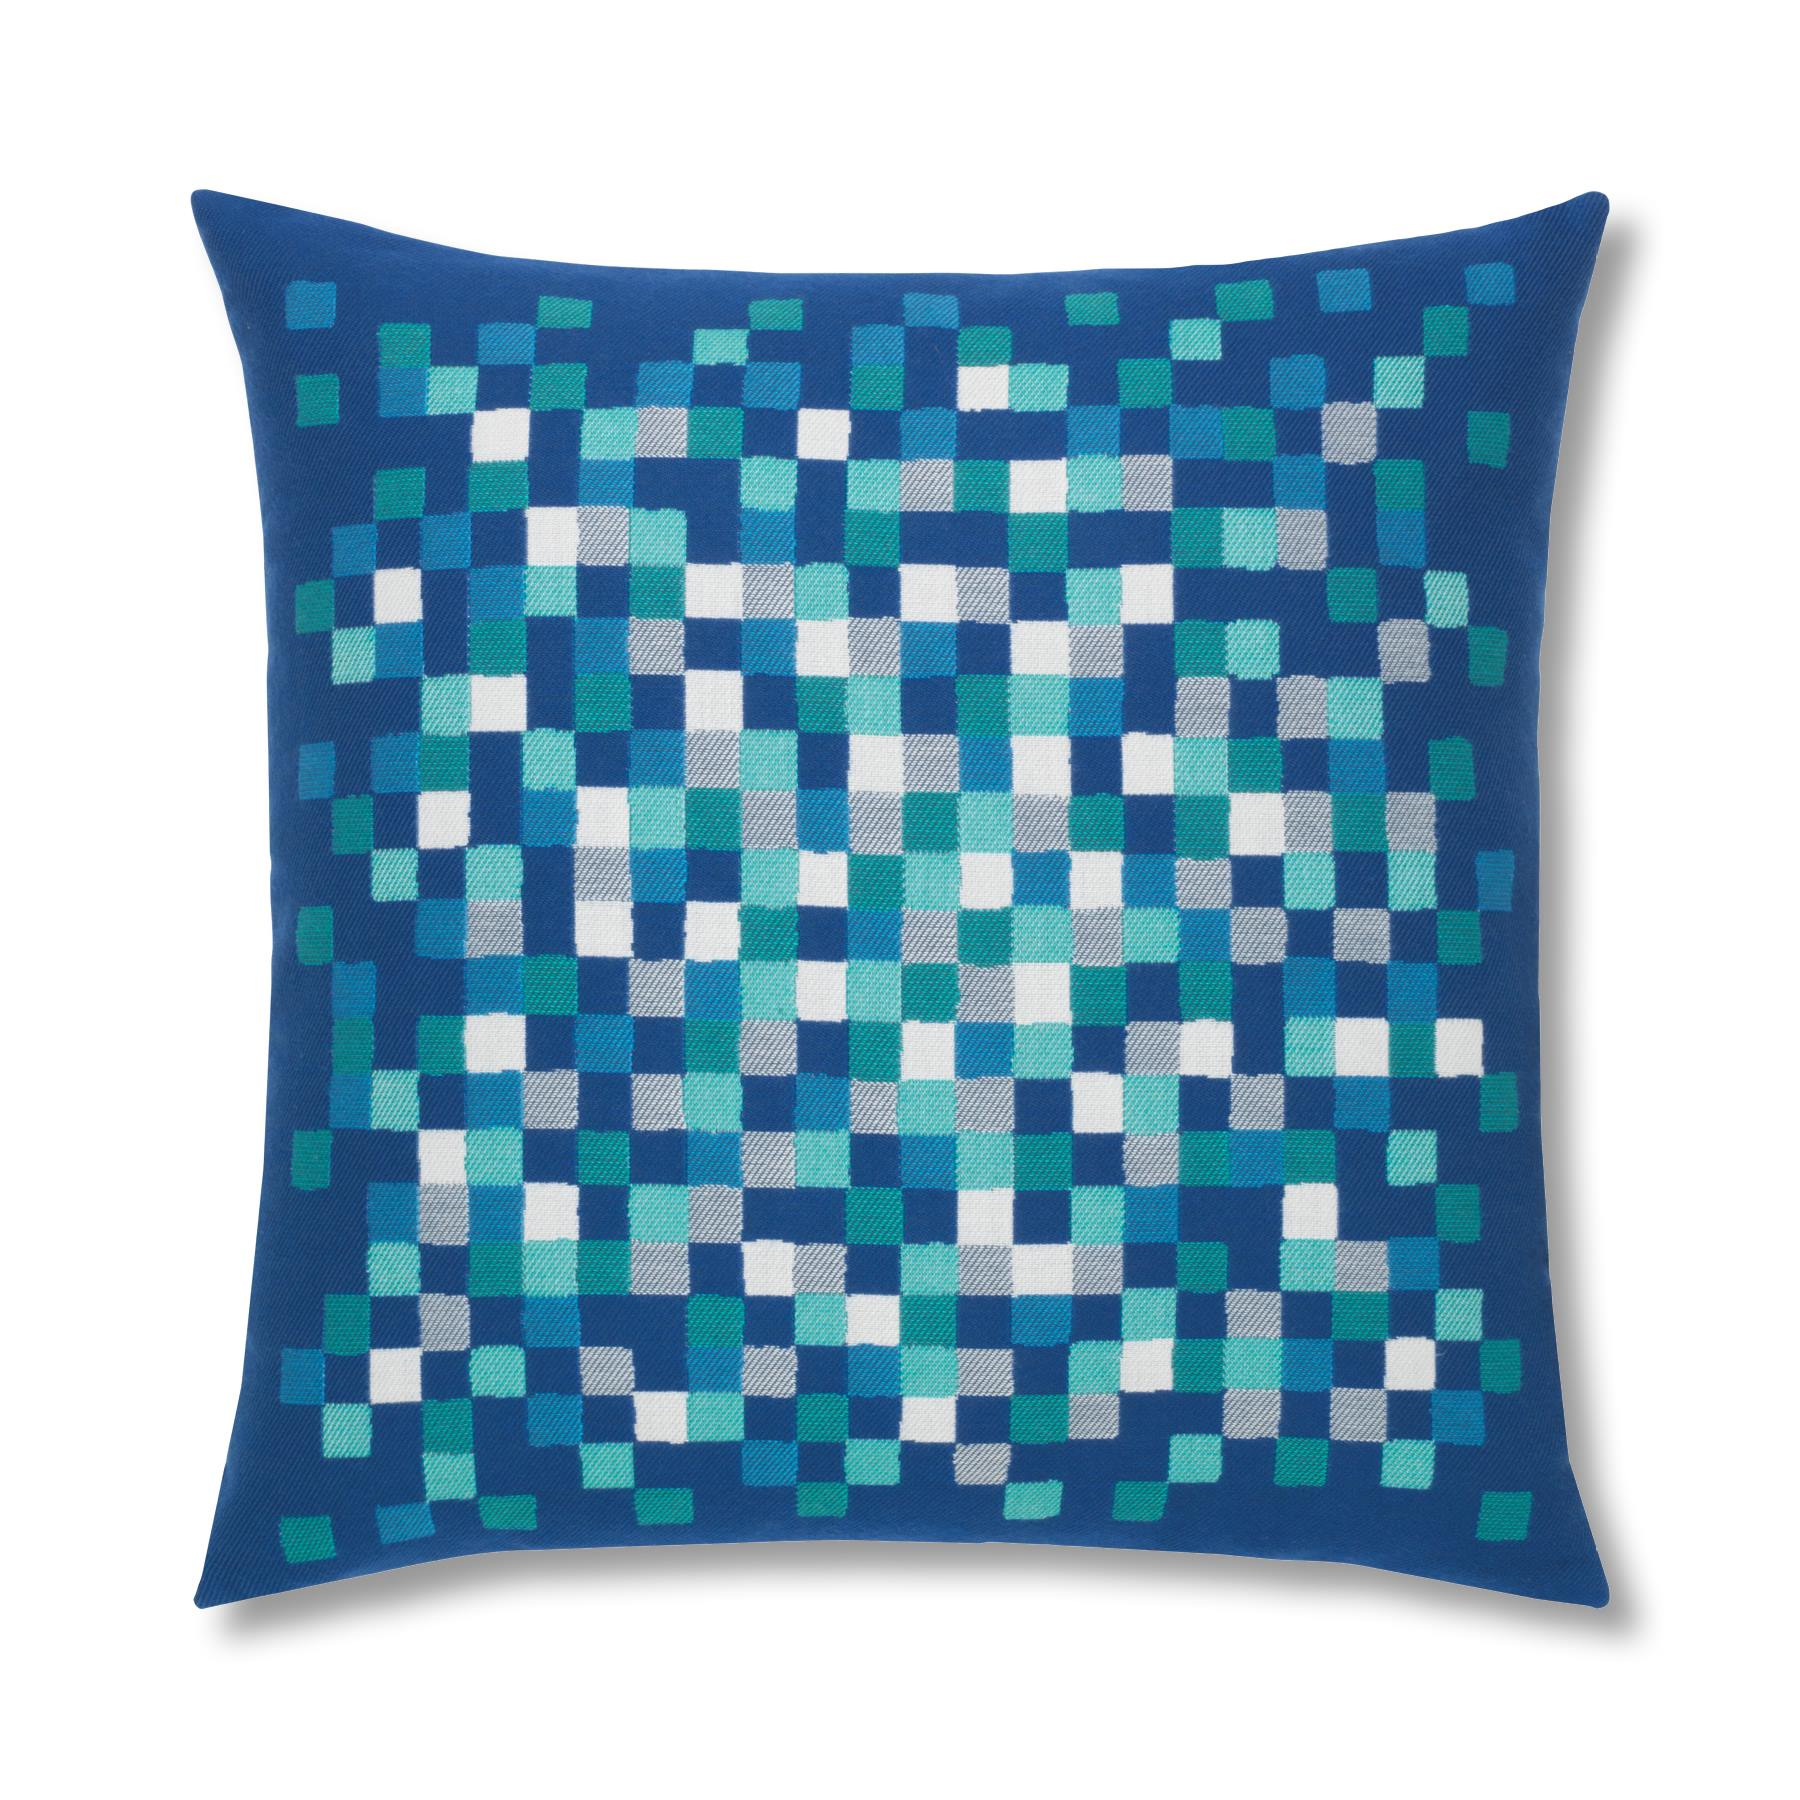 cobalt-pixel Elaine Smith Pillow